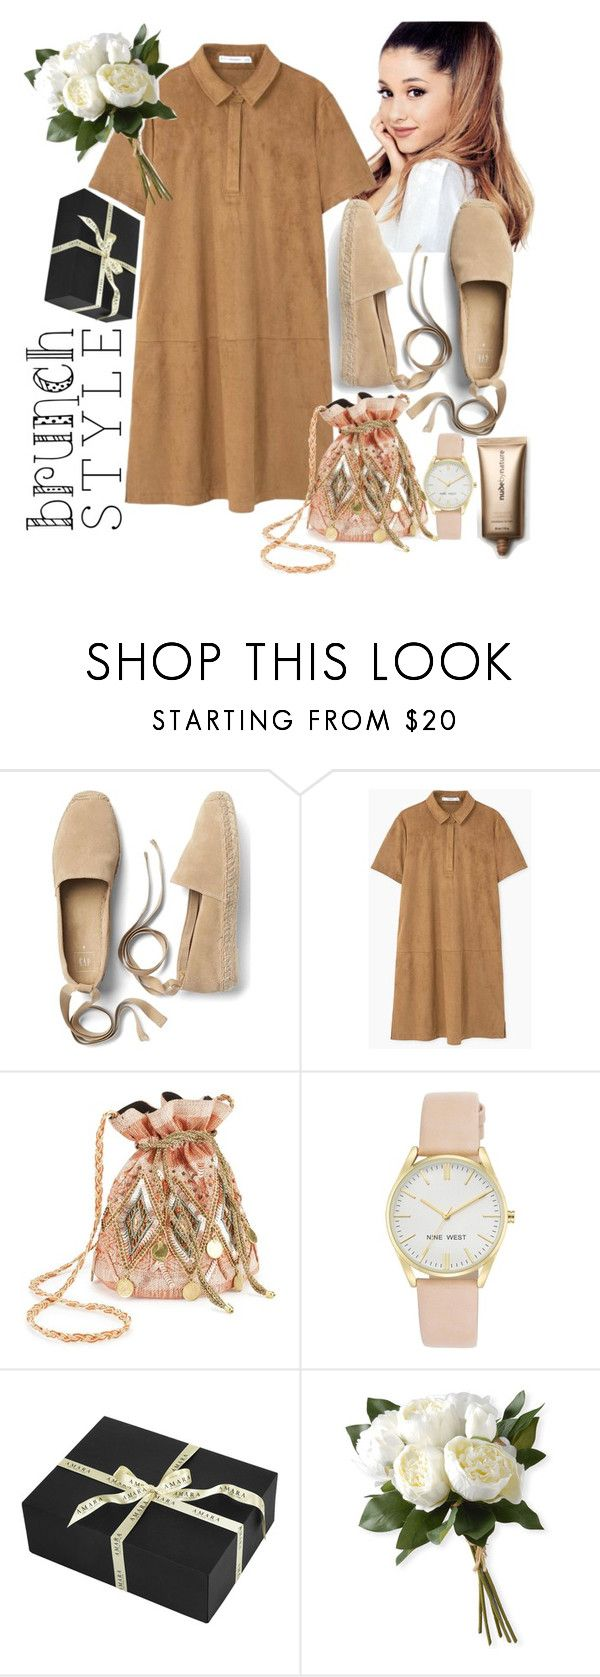 """Untitled #344"" by hangdo ❤ liked on Polyvore featuring Gap, MANGO, Miss Selfridge, Nine West, Amara, National Tree Company and Nude by Nature"